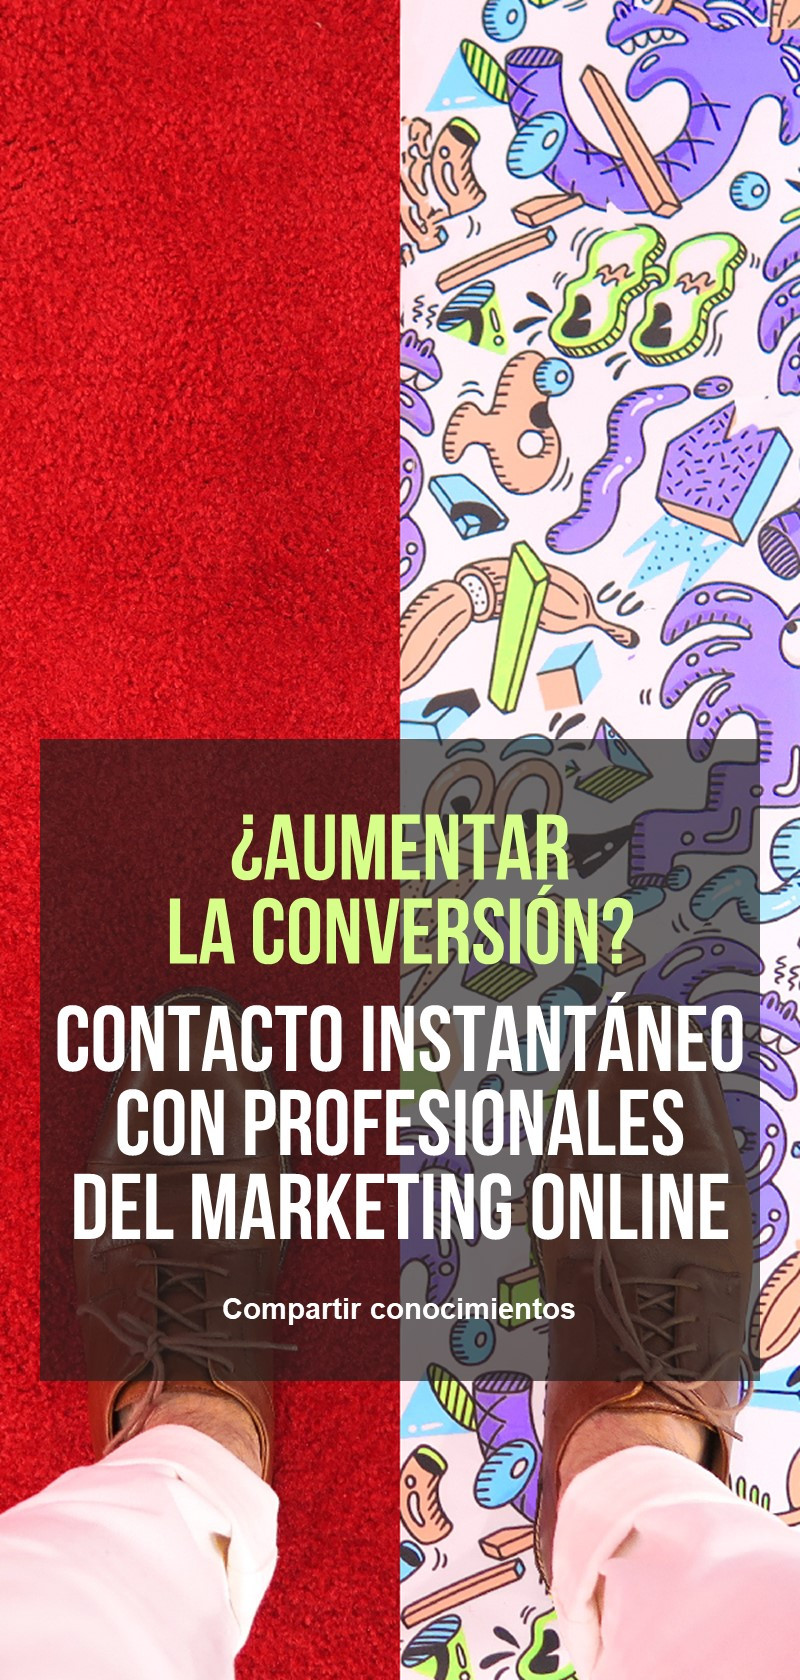 Estrategia y asesoramiento de marketing online